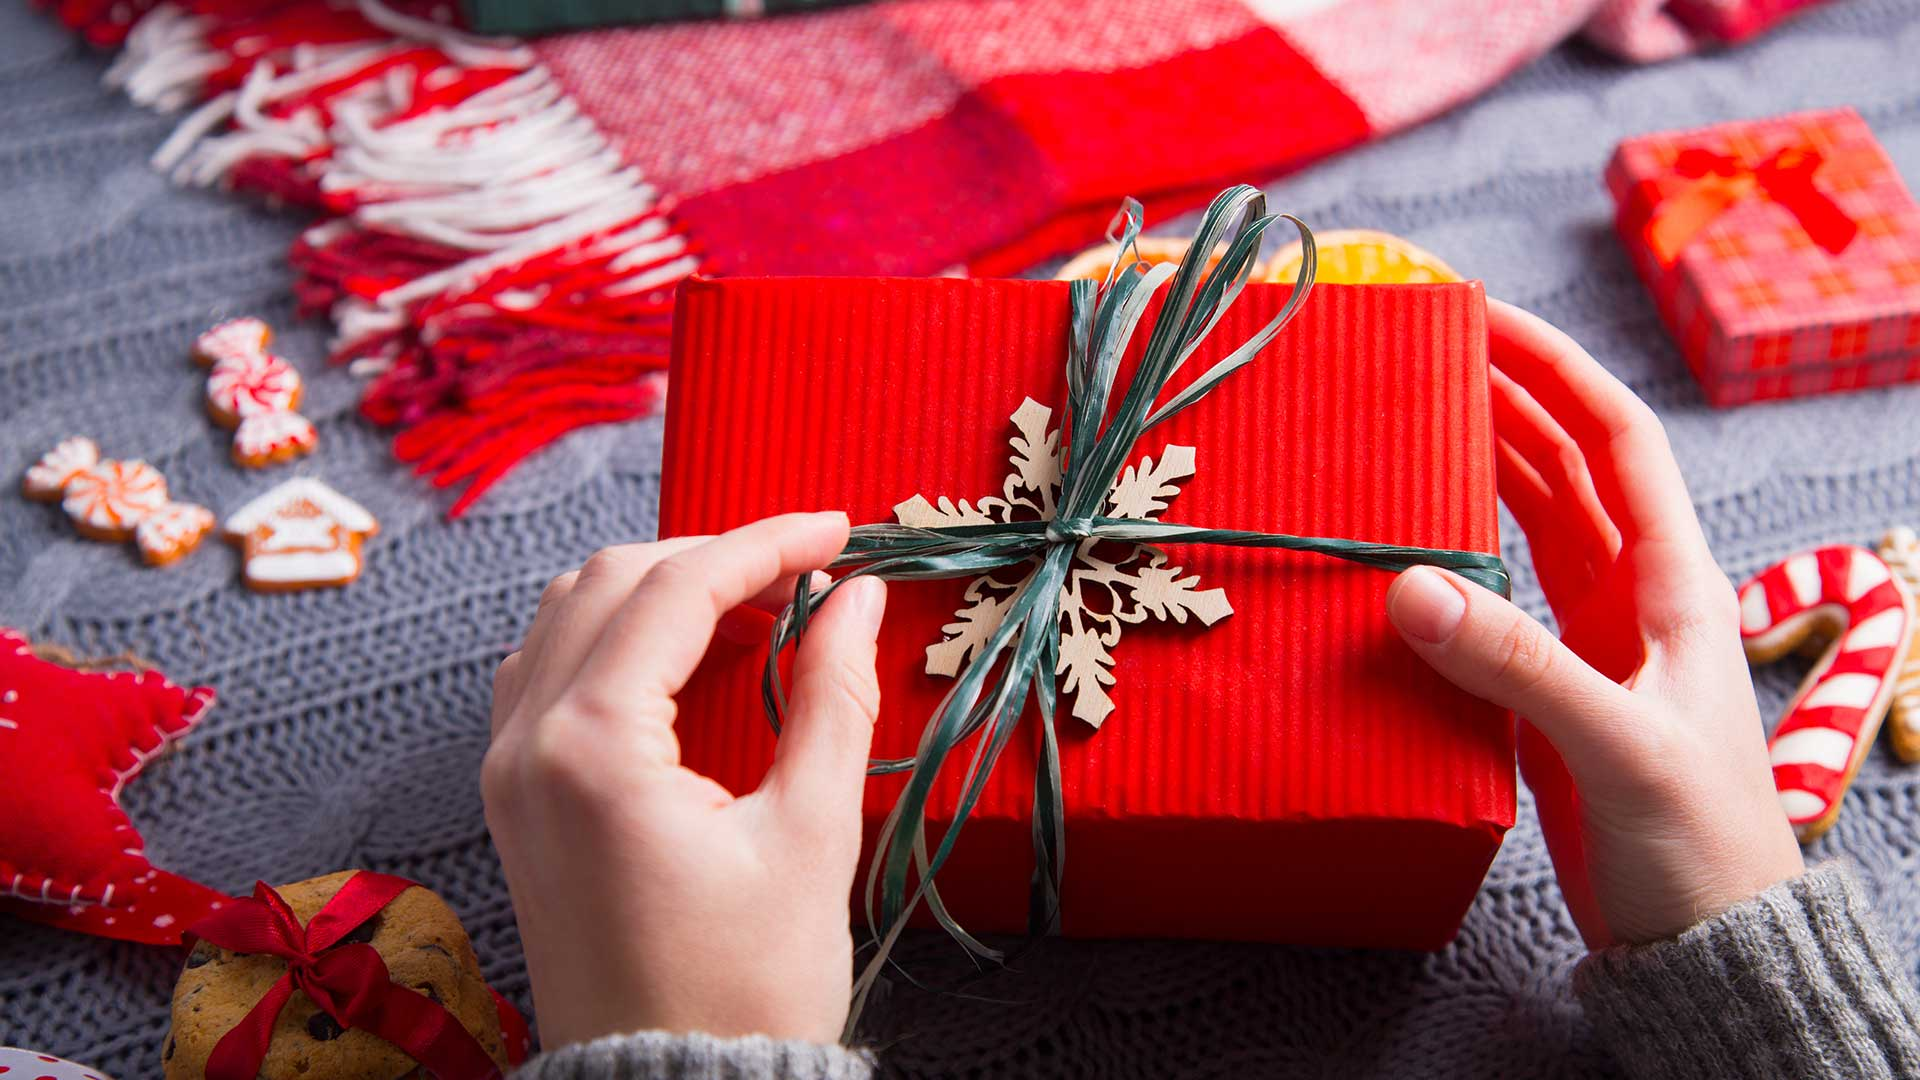 A woman wearing a grey jumper wraps a Christmas gift in red paper with a ribbon and cardboard snowflake for trim.